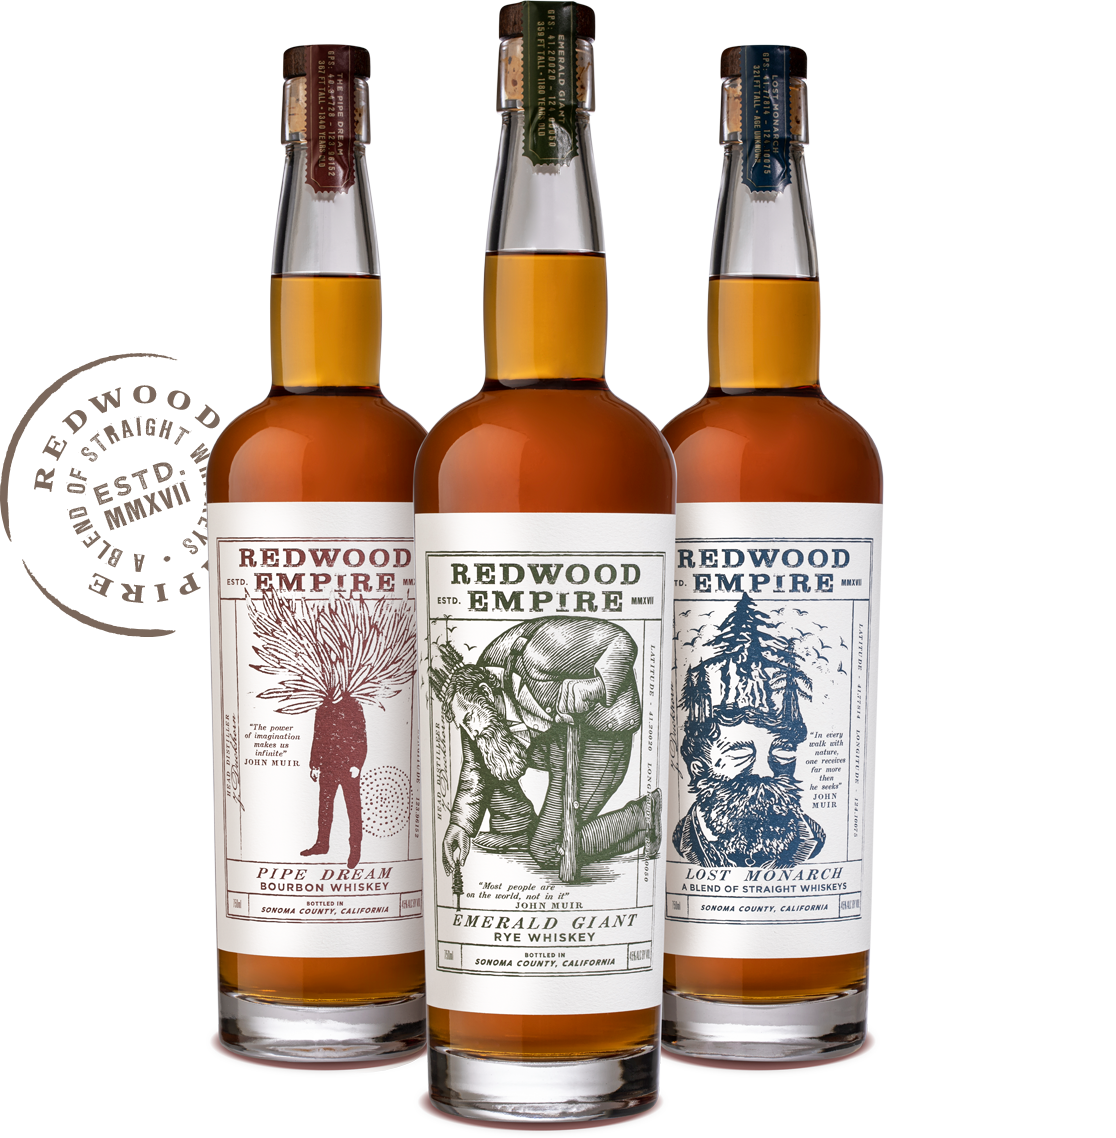 Pipe Dream - Bourbon Whiskey / Emerald Giant - Rye Whiskey / Lost Monarch - A Blend of Straight Whiskeys